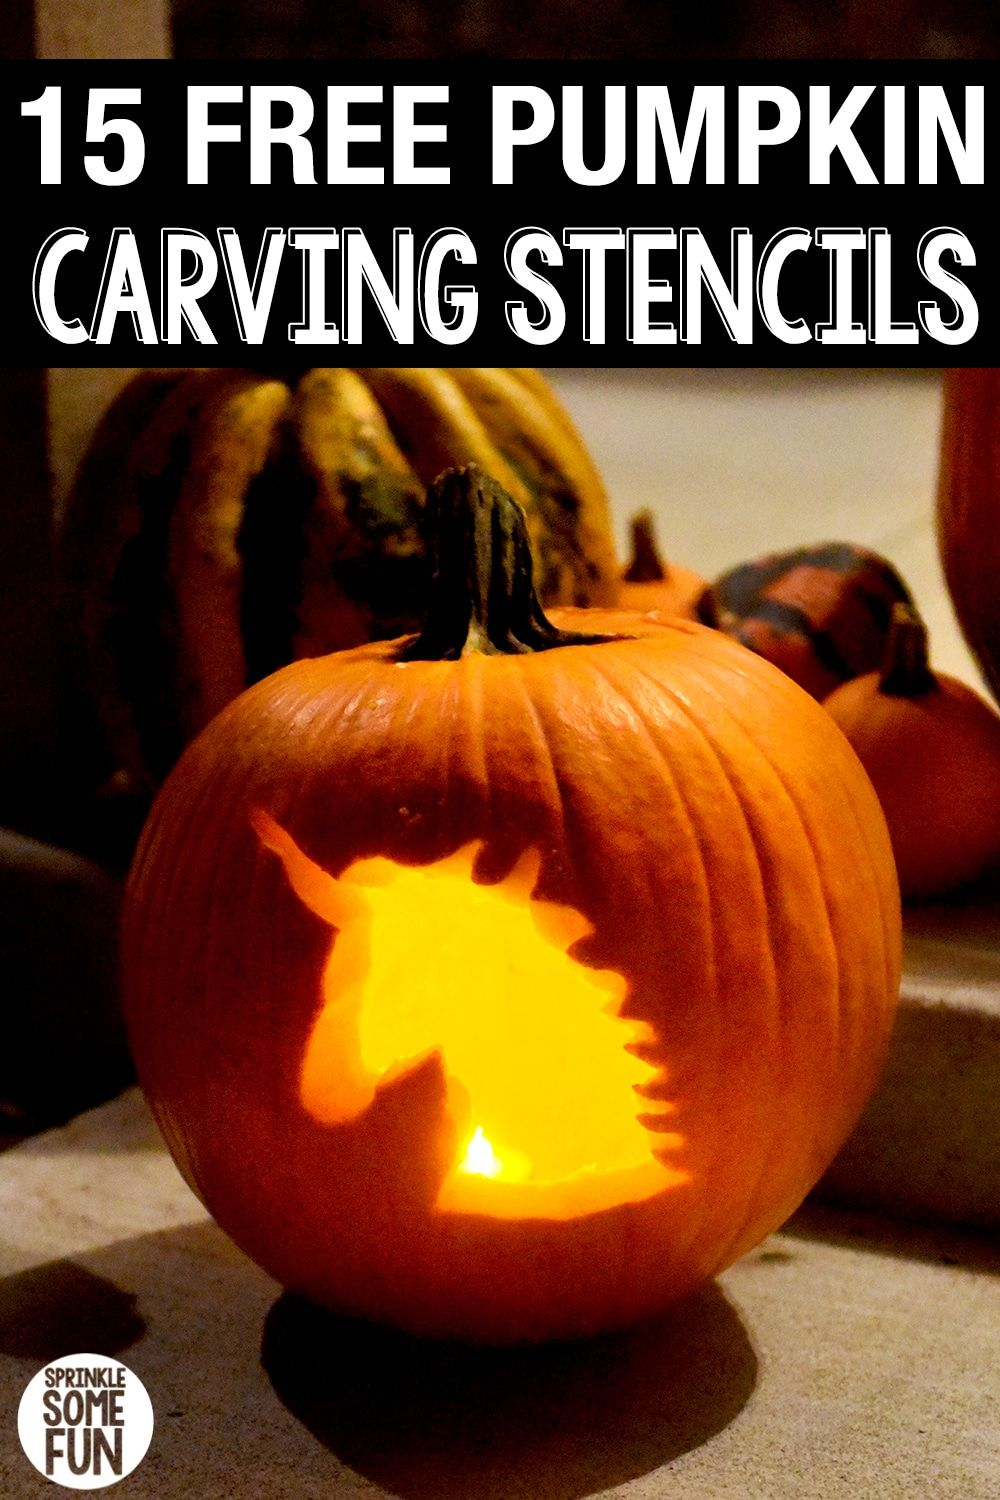 15 Free Pumpkin Carving Stencils Printables Tips Sprinkle Some Fun Pumpkin Carving Stencils Free Pumpkin Carving Cute Pumpkin Carving